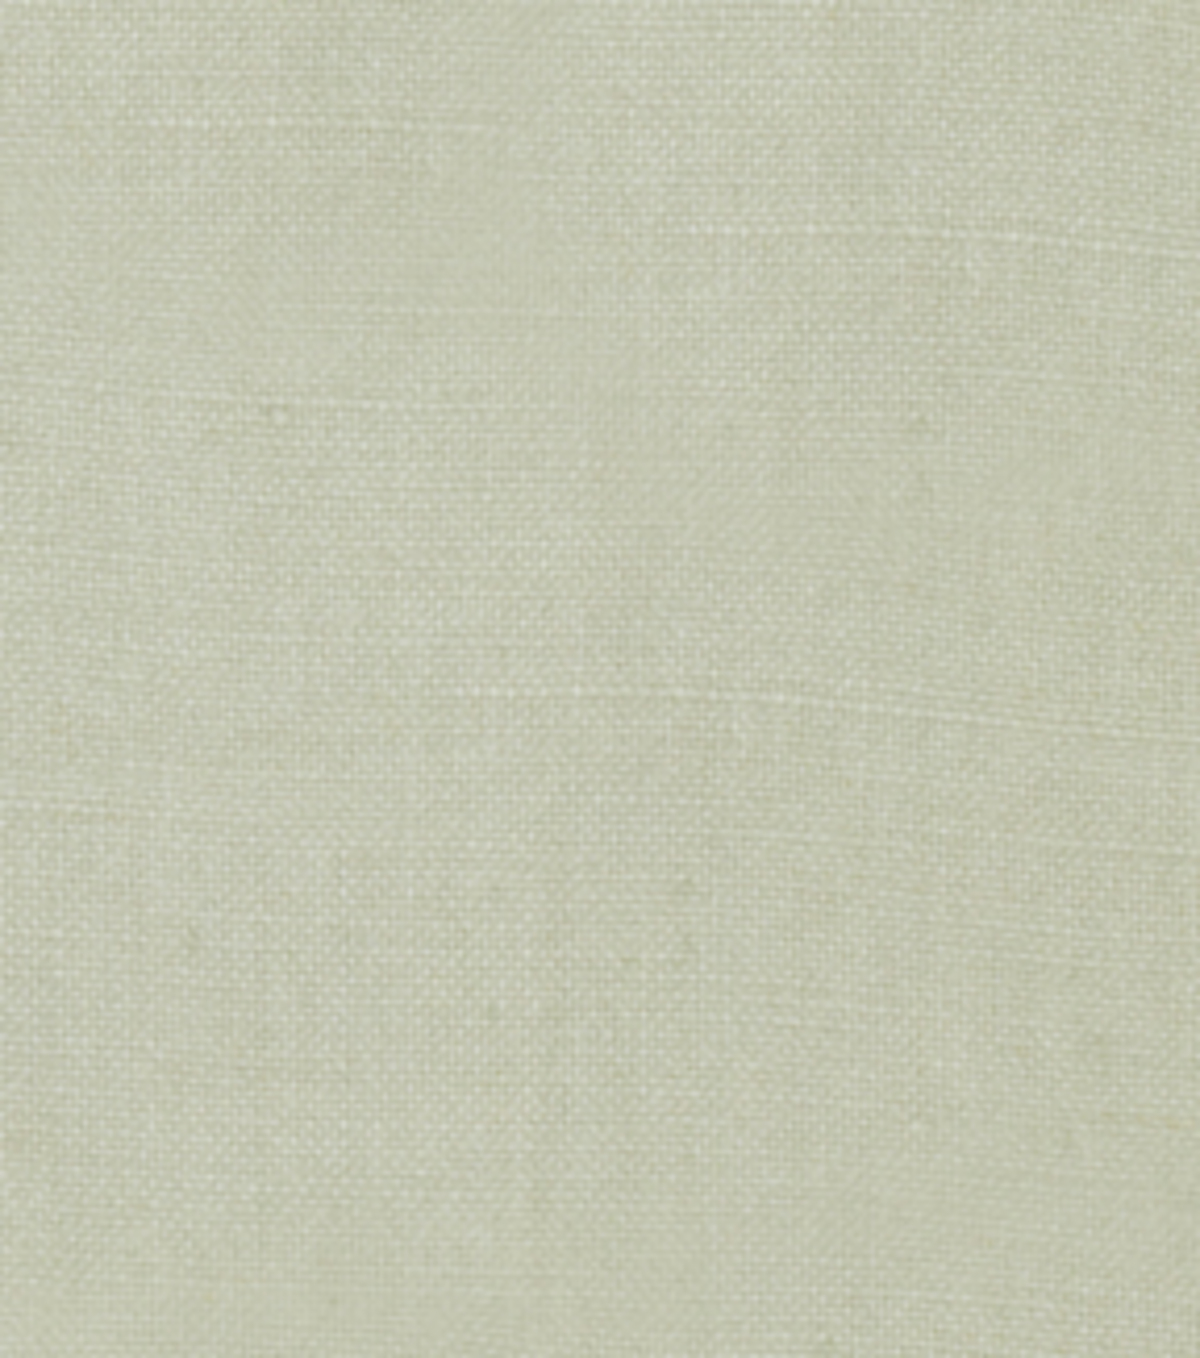 Home Decor 8\u0022x8\u0022 Fabric Swatch-Signature Series Sigourney Mist